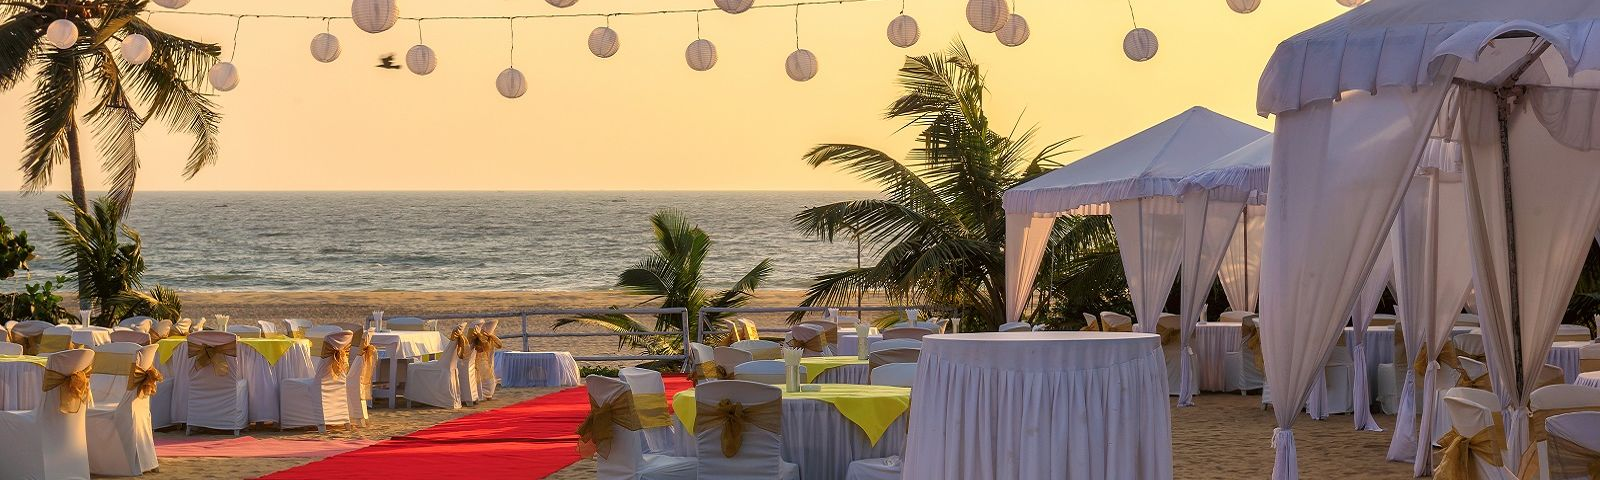 Goa Restaurants